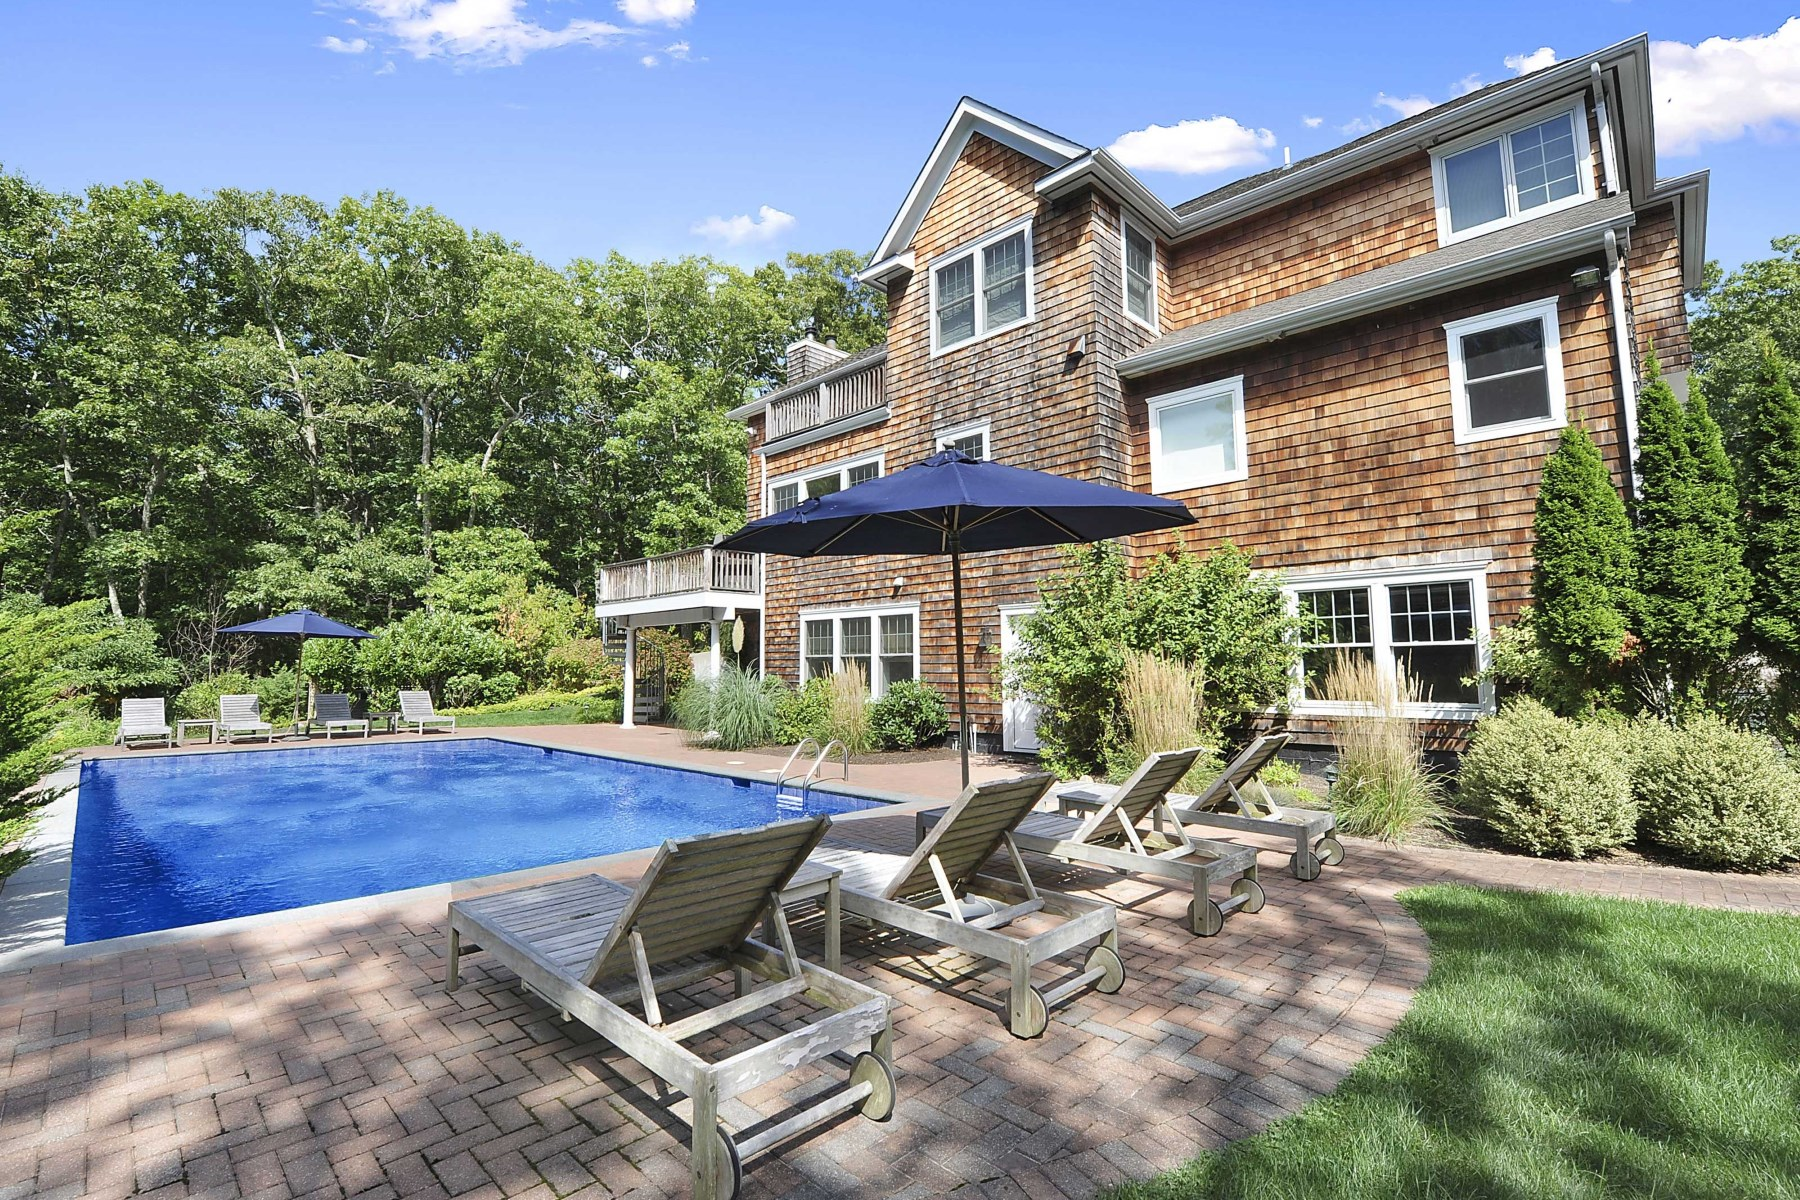 Property Of Lovely Shingle Sided on 2 Acres w Pool